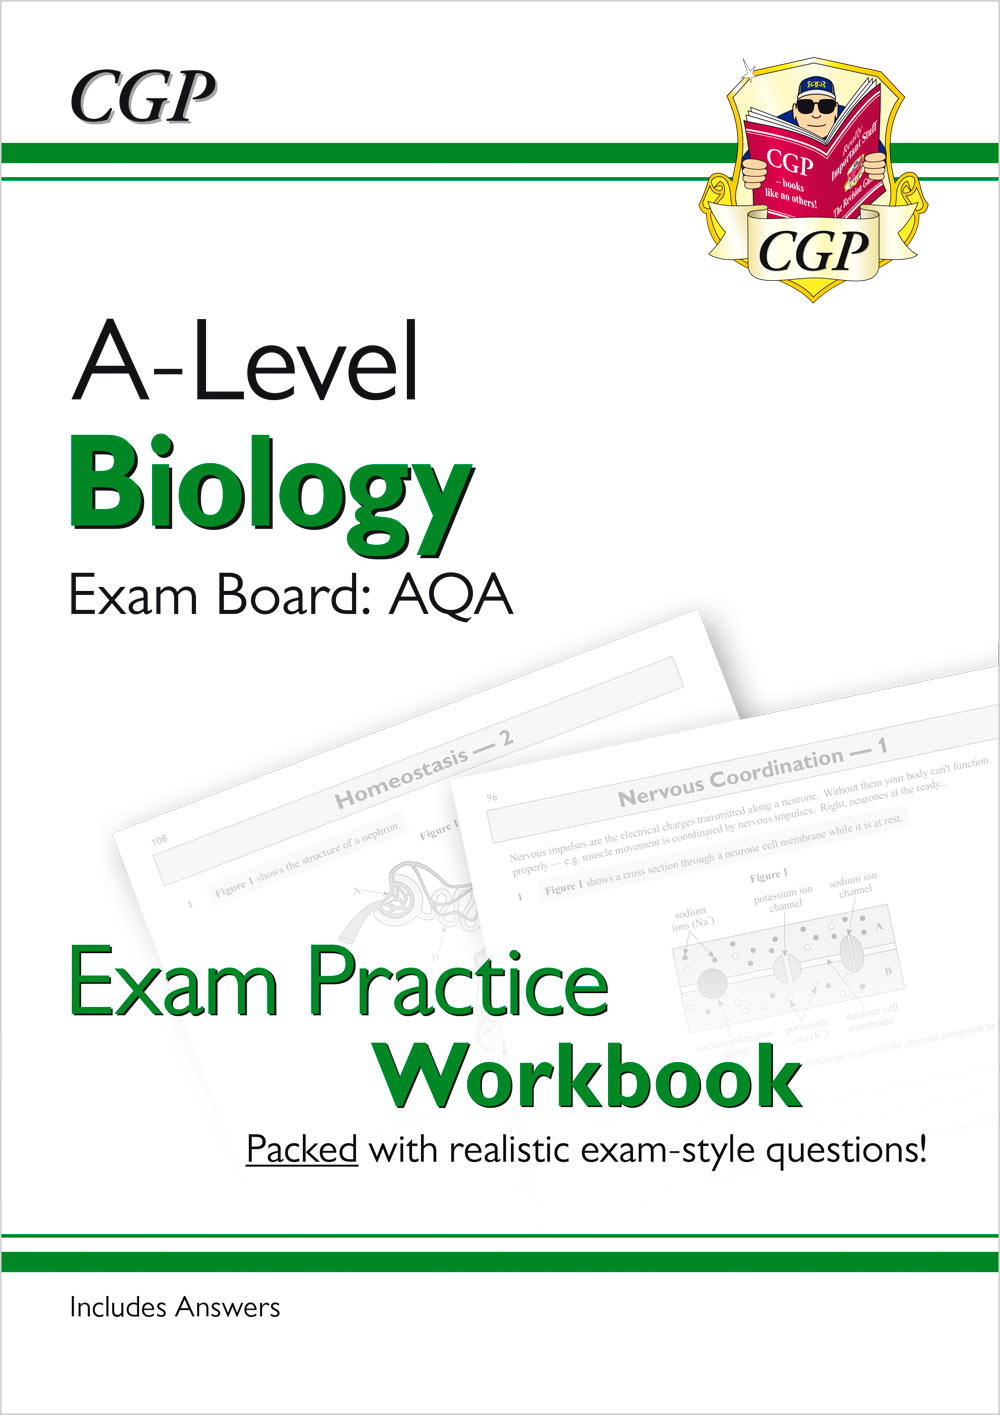 BAQ71 - New A-Level Biology for 2018: AQA Year 1 & 2 Exam Practice Workbook - includes Answers